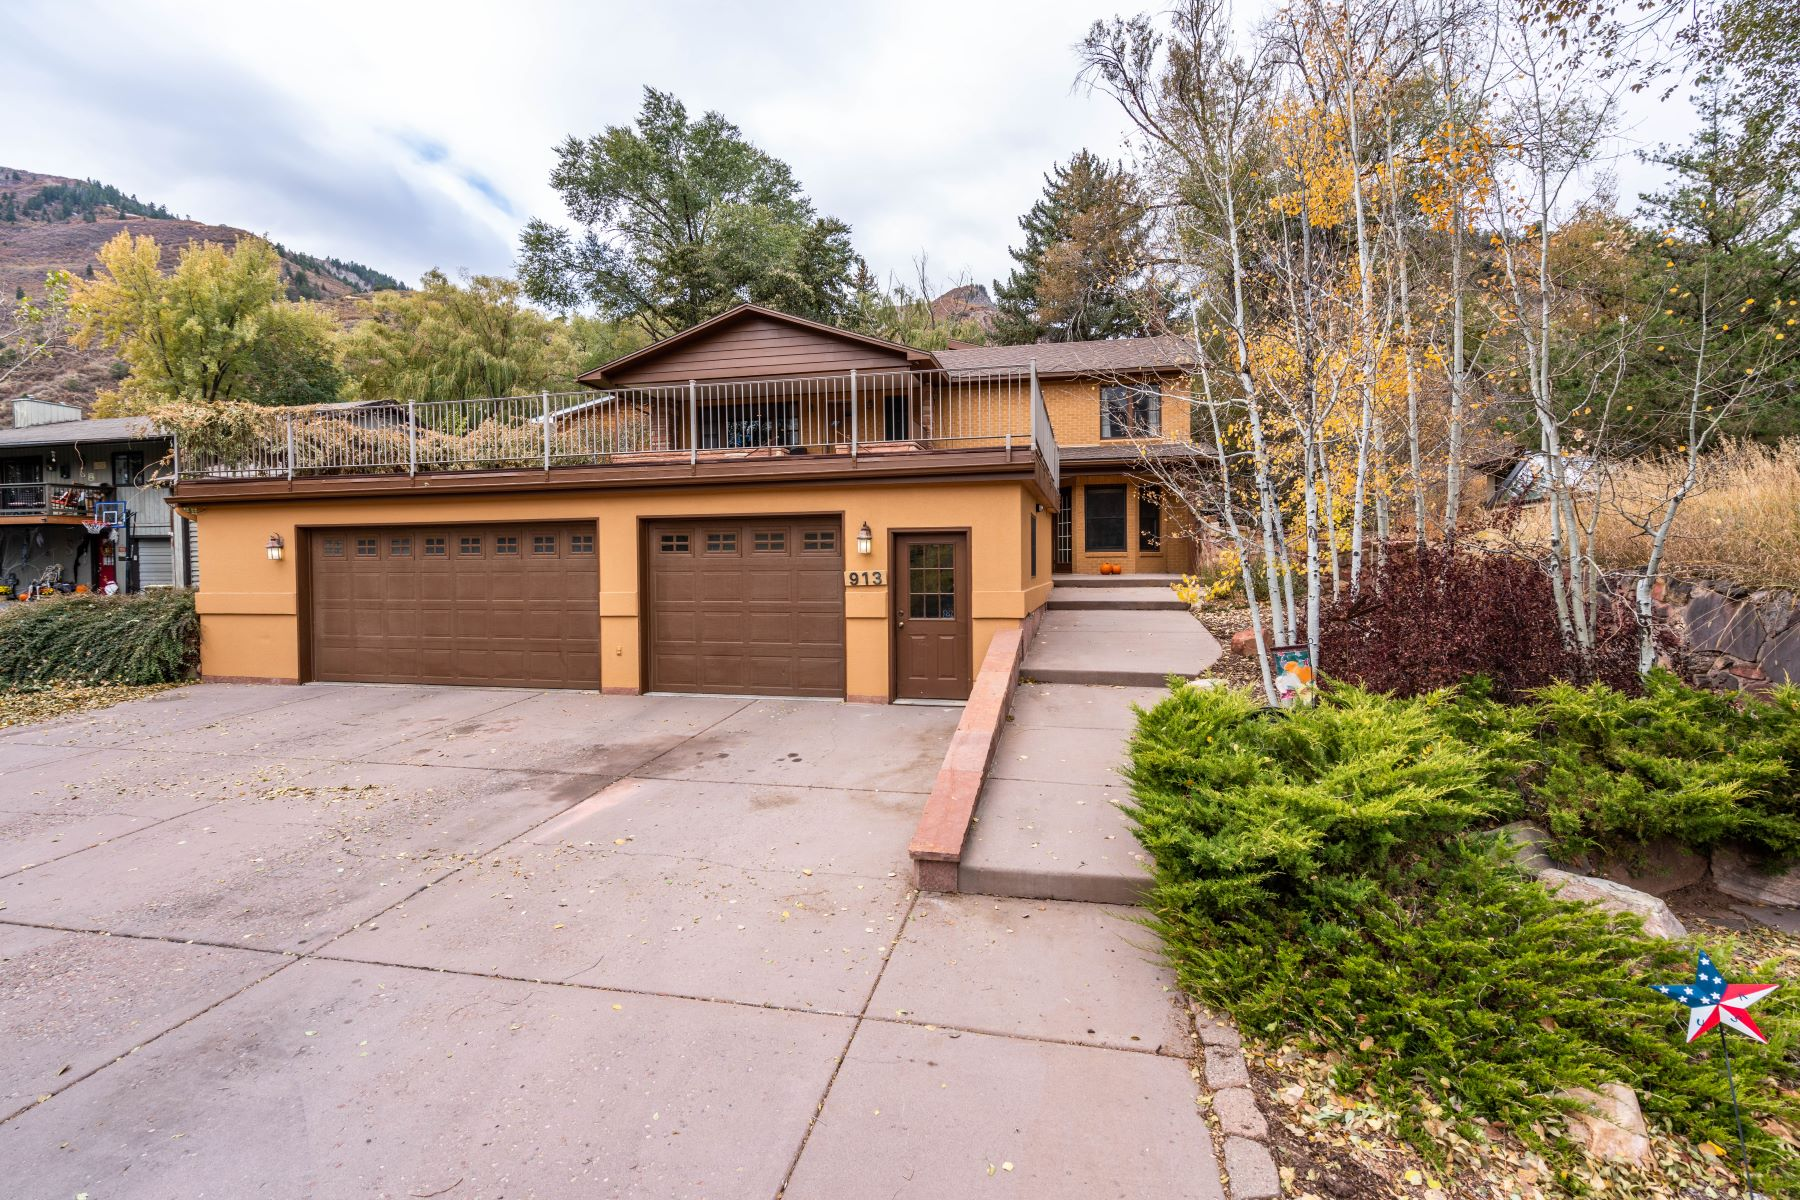 Single Family Homes for Active at WEST NINTH PLACE. LOT 34B 913 Red Mountain Drive Glenwood Springs, Colorado 81601 United States